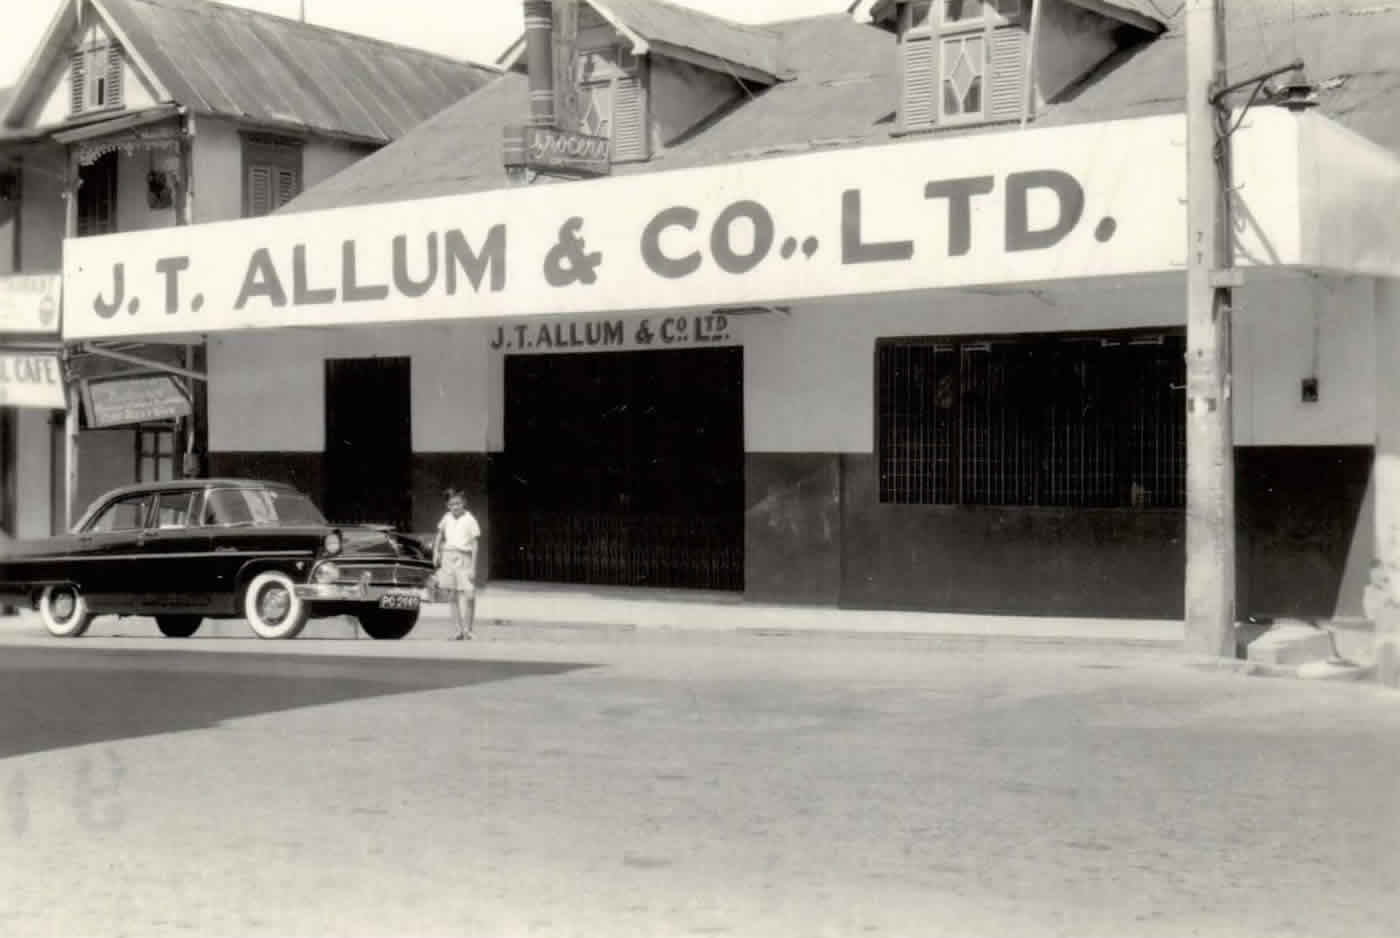 JT Allum & Co. Ltd. on 100 High Street circa 1955